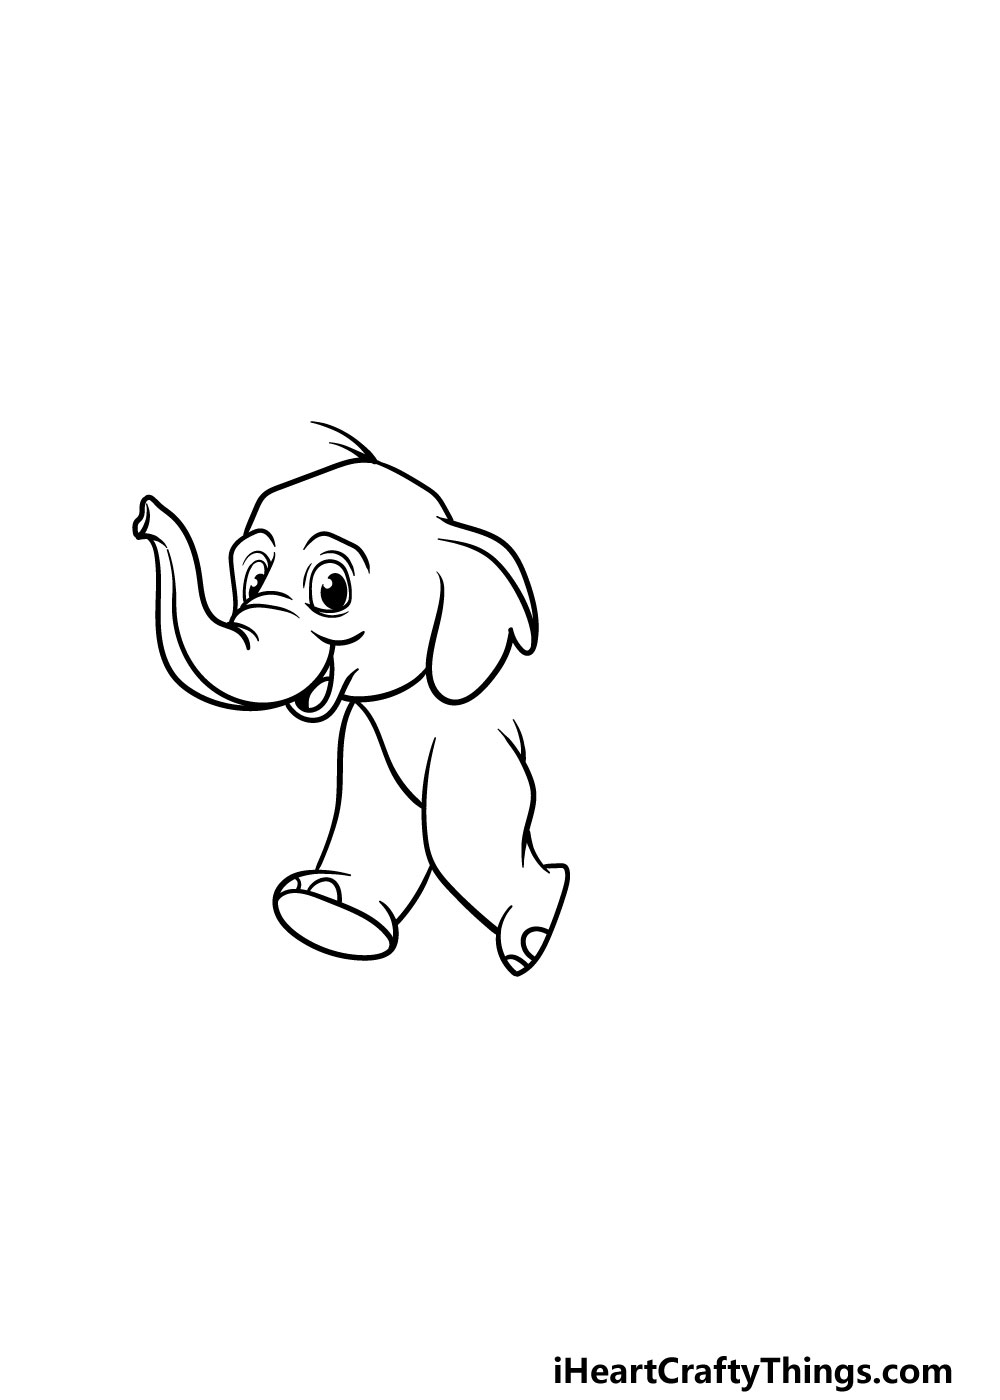 drawing a baby elephant step 3